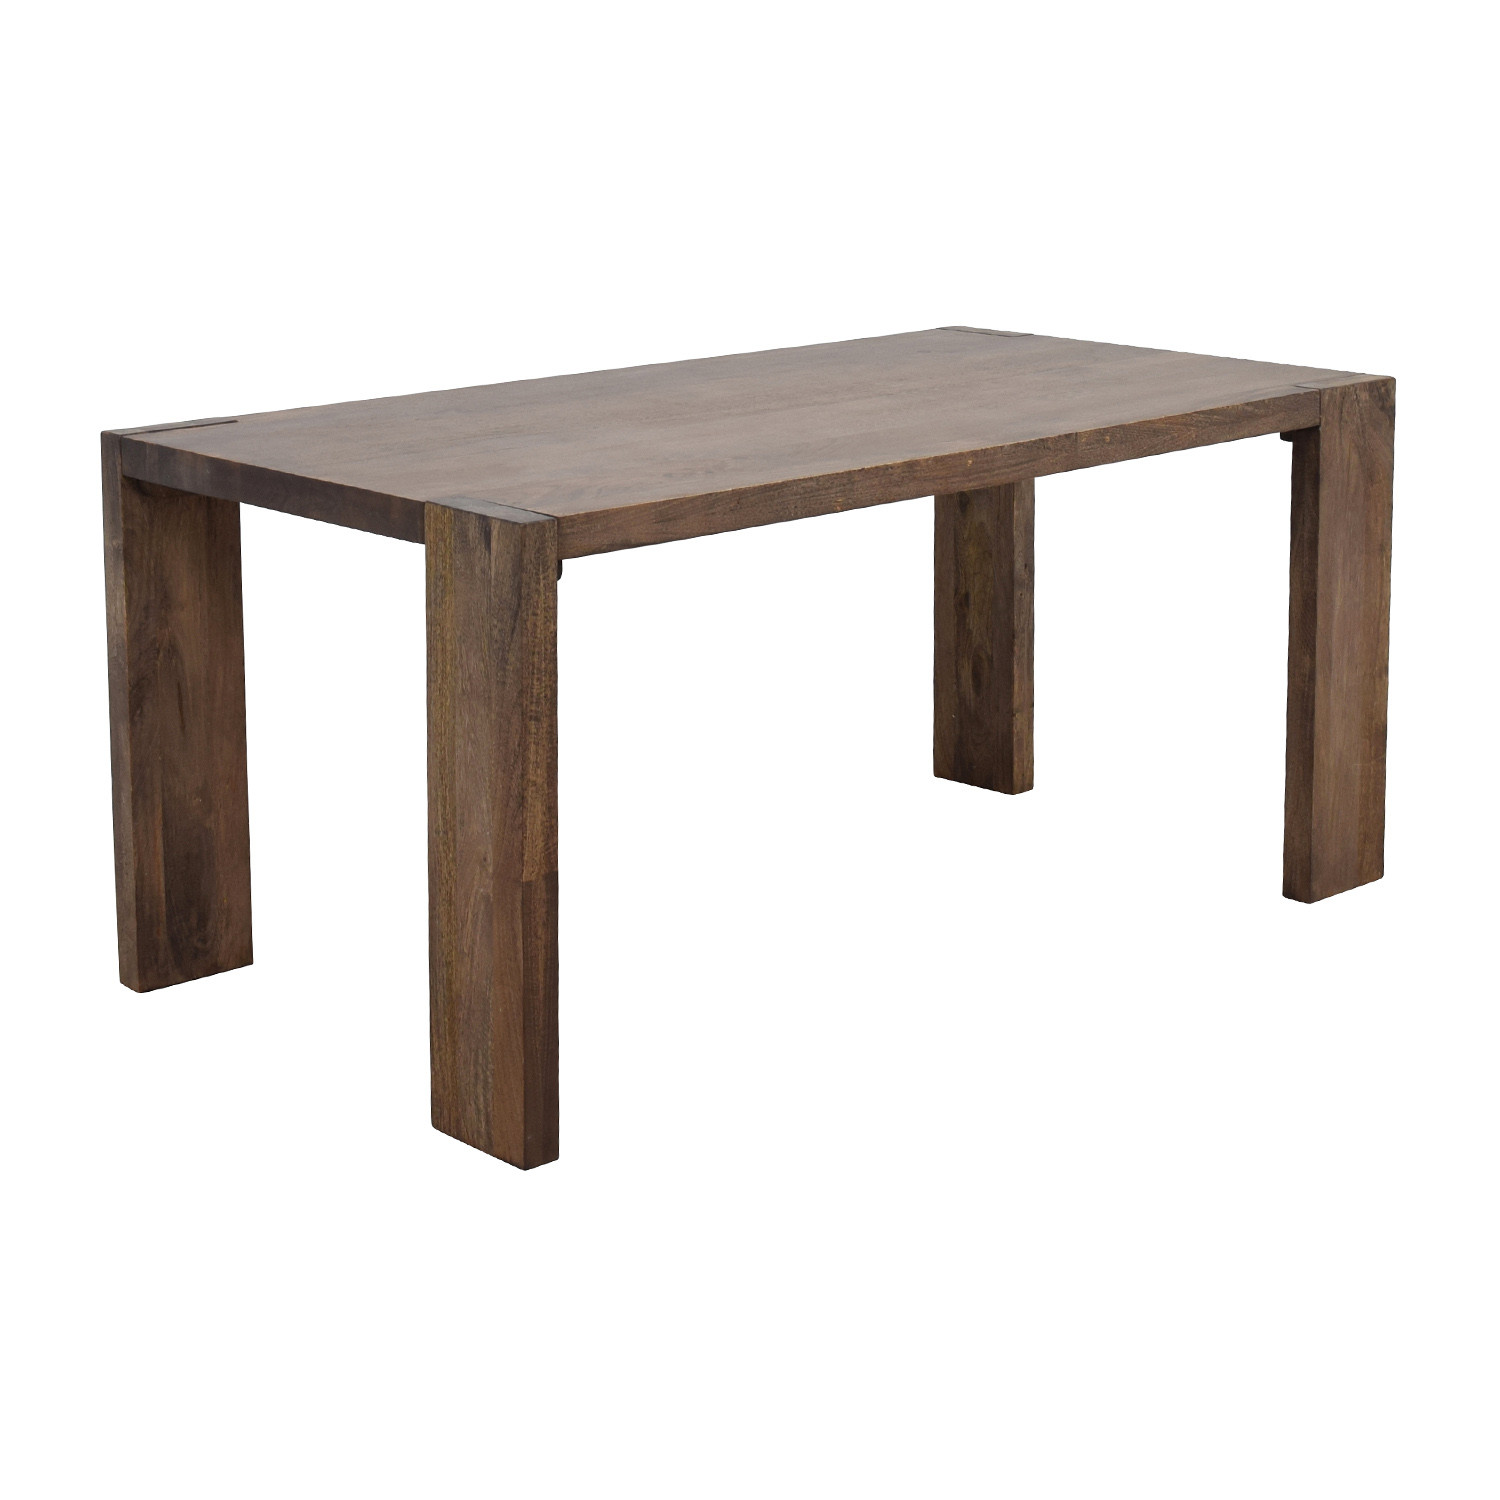 Best ideas about Cb2 Dining Table . Save or Pin OFF CB2 CB2 Blox Dining Table Tables Now.